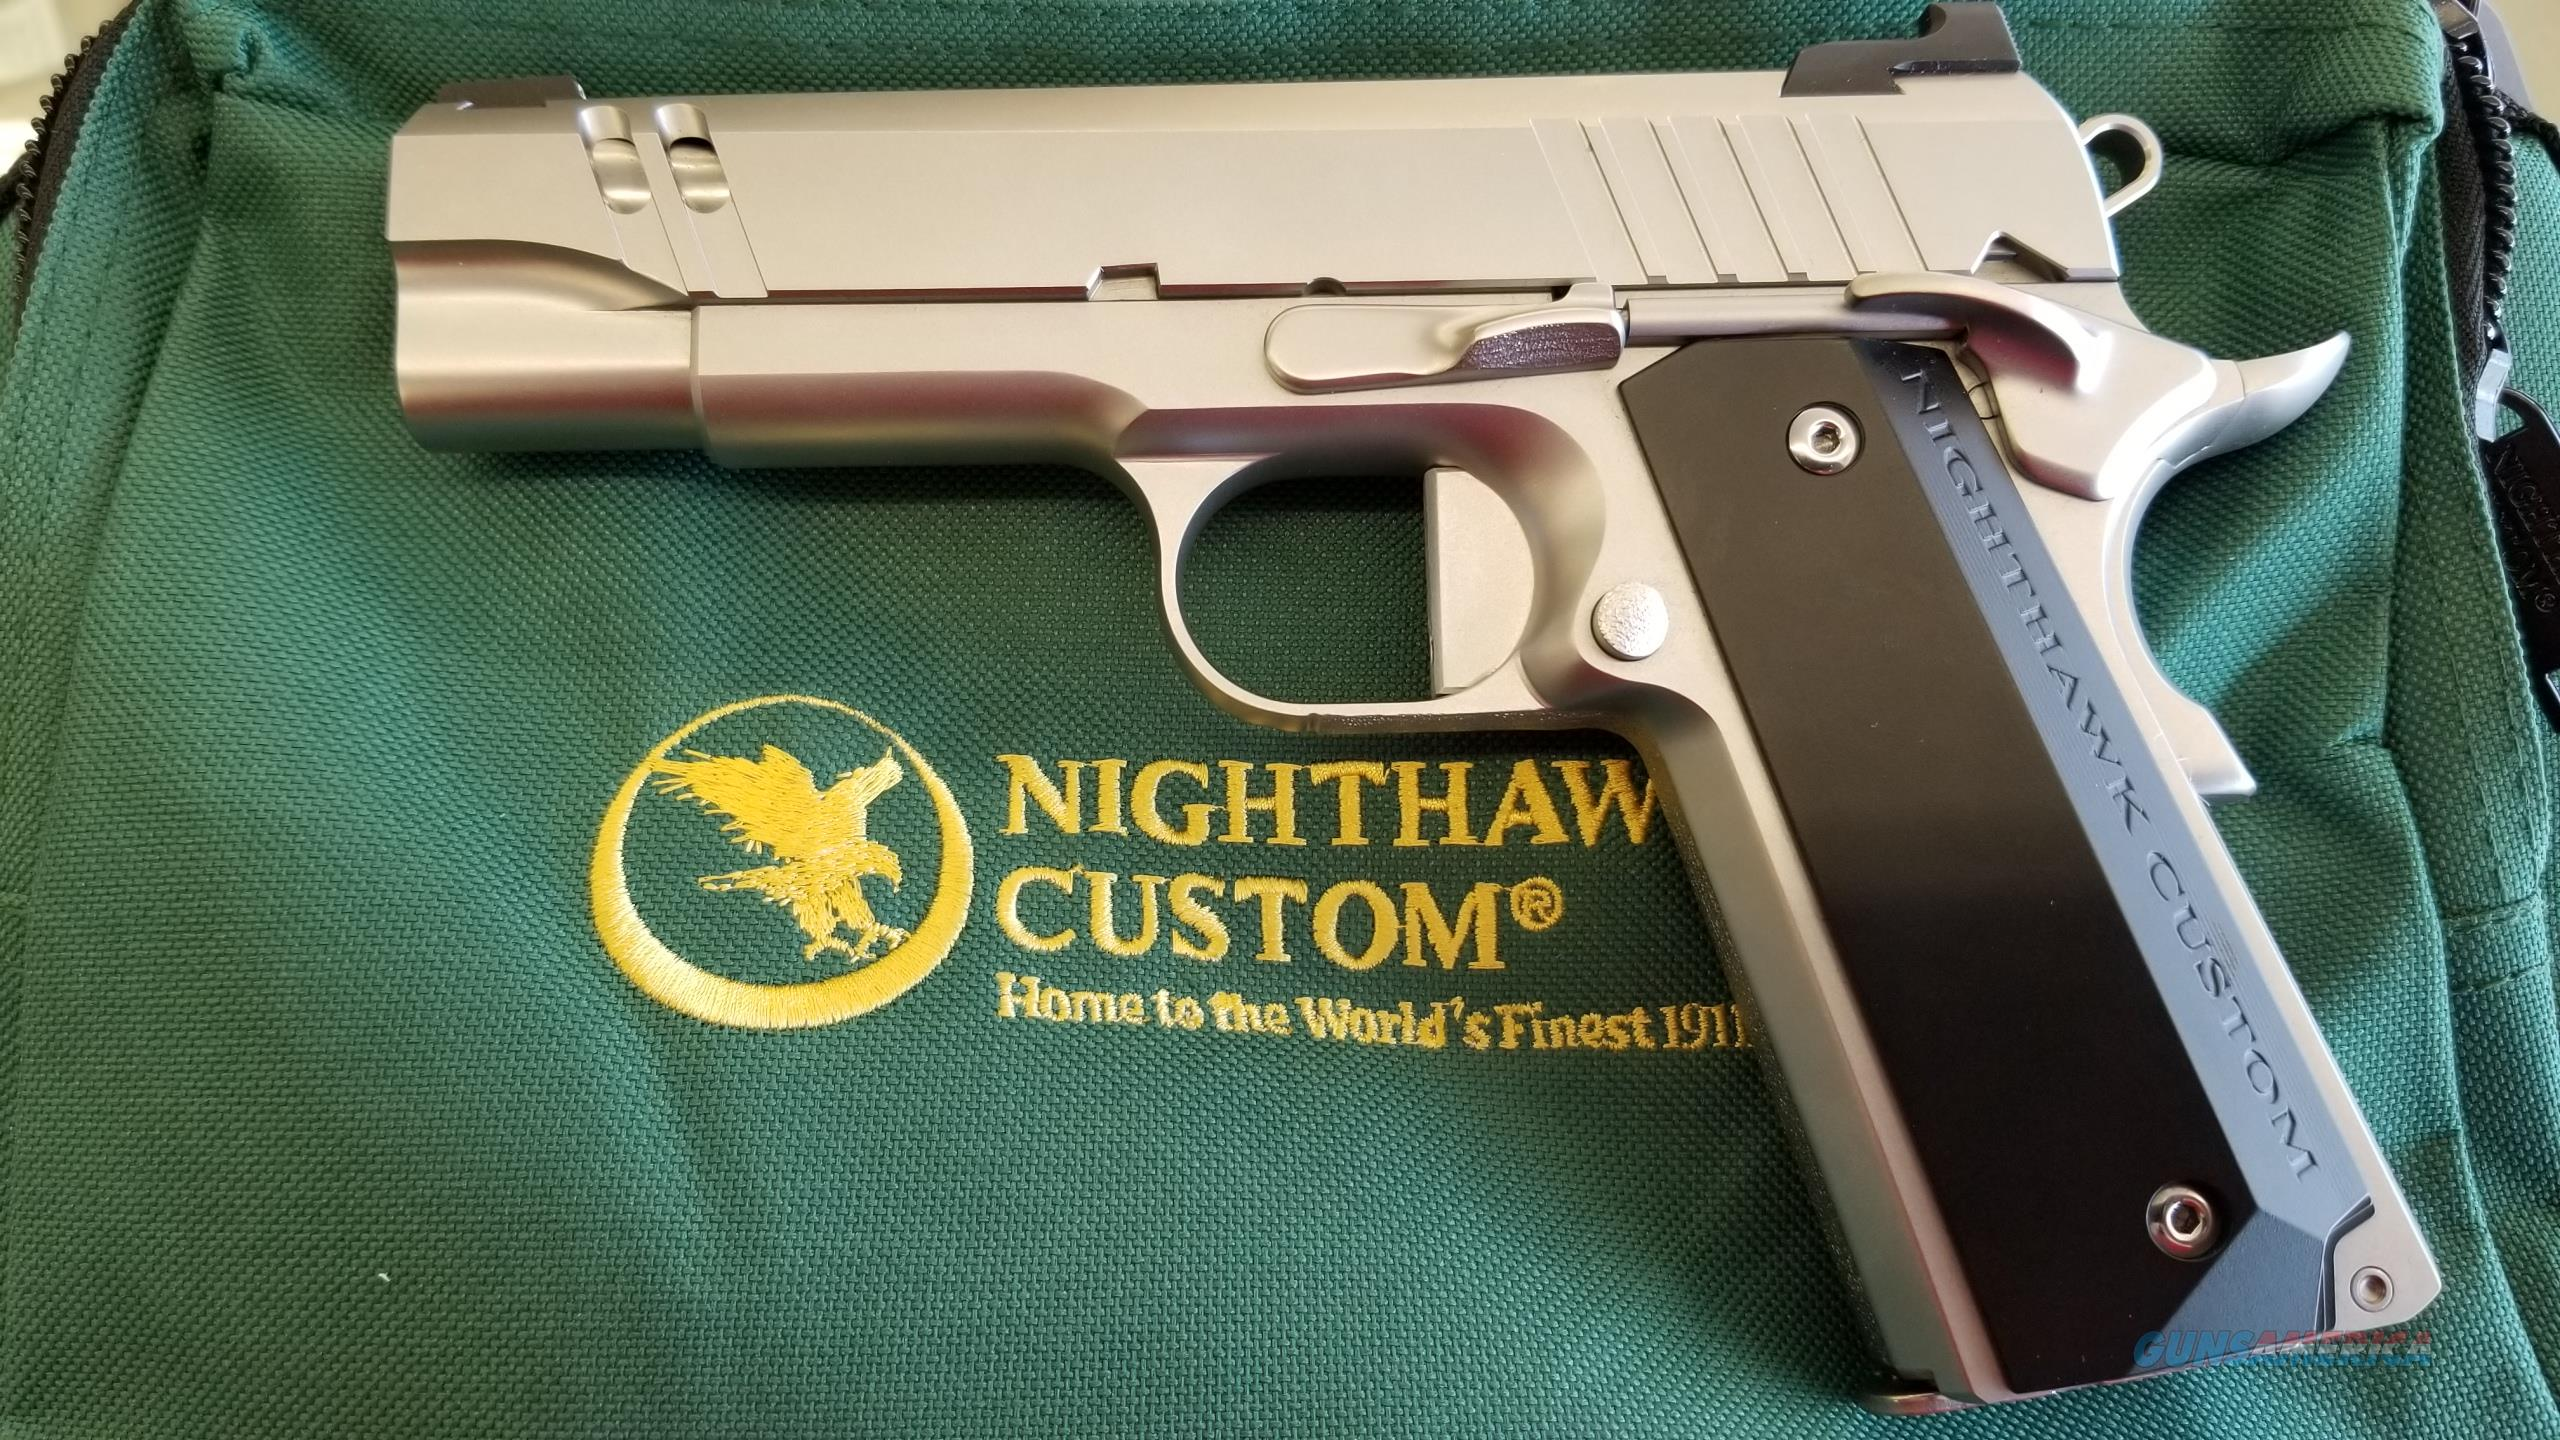 Nighthawk Customs Tri Cut Carry 9mm w/ Stainless Steel Upgrade  Guns > Pistols > Nighthawk Pistols